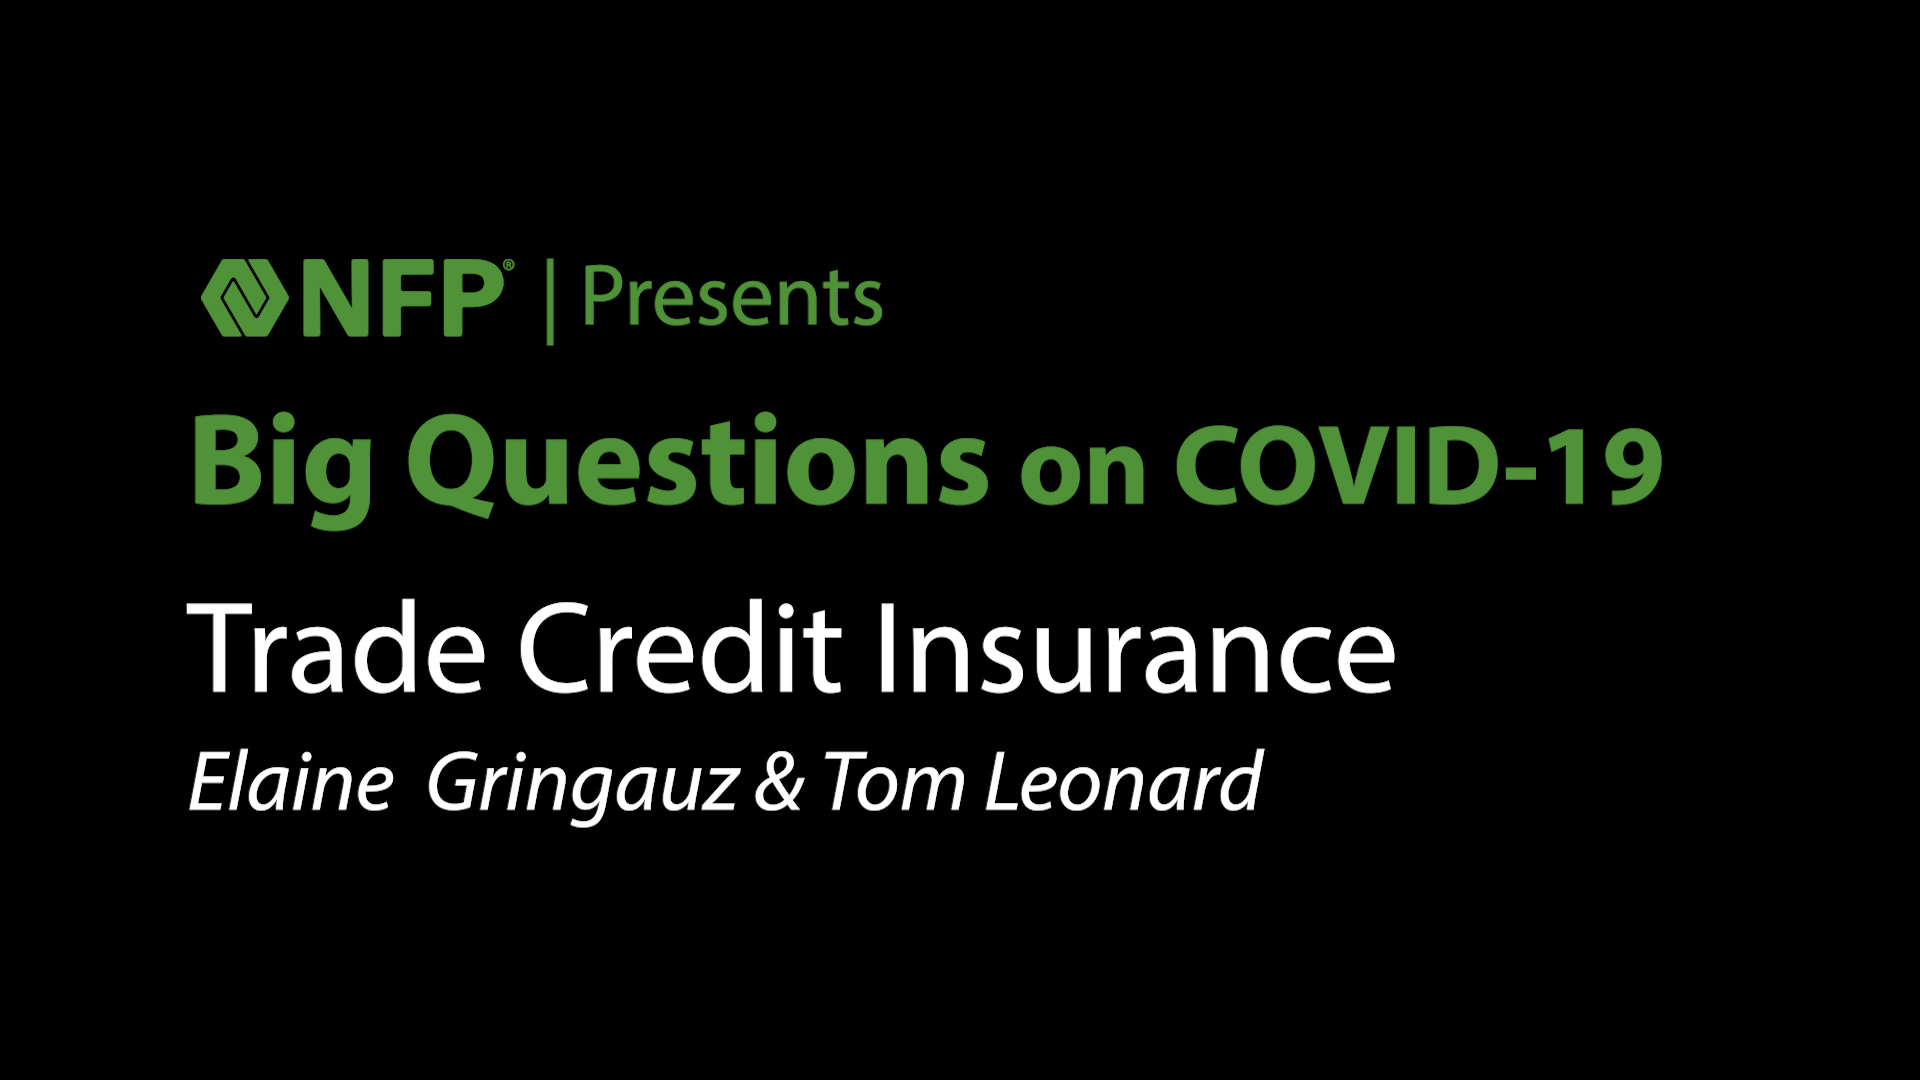 Big Questions on COVID-19 - Trade Credit Insurance with Elaine Gringuaz and Tom Leonard